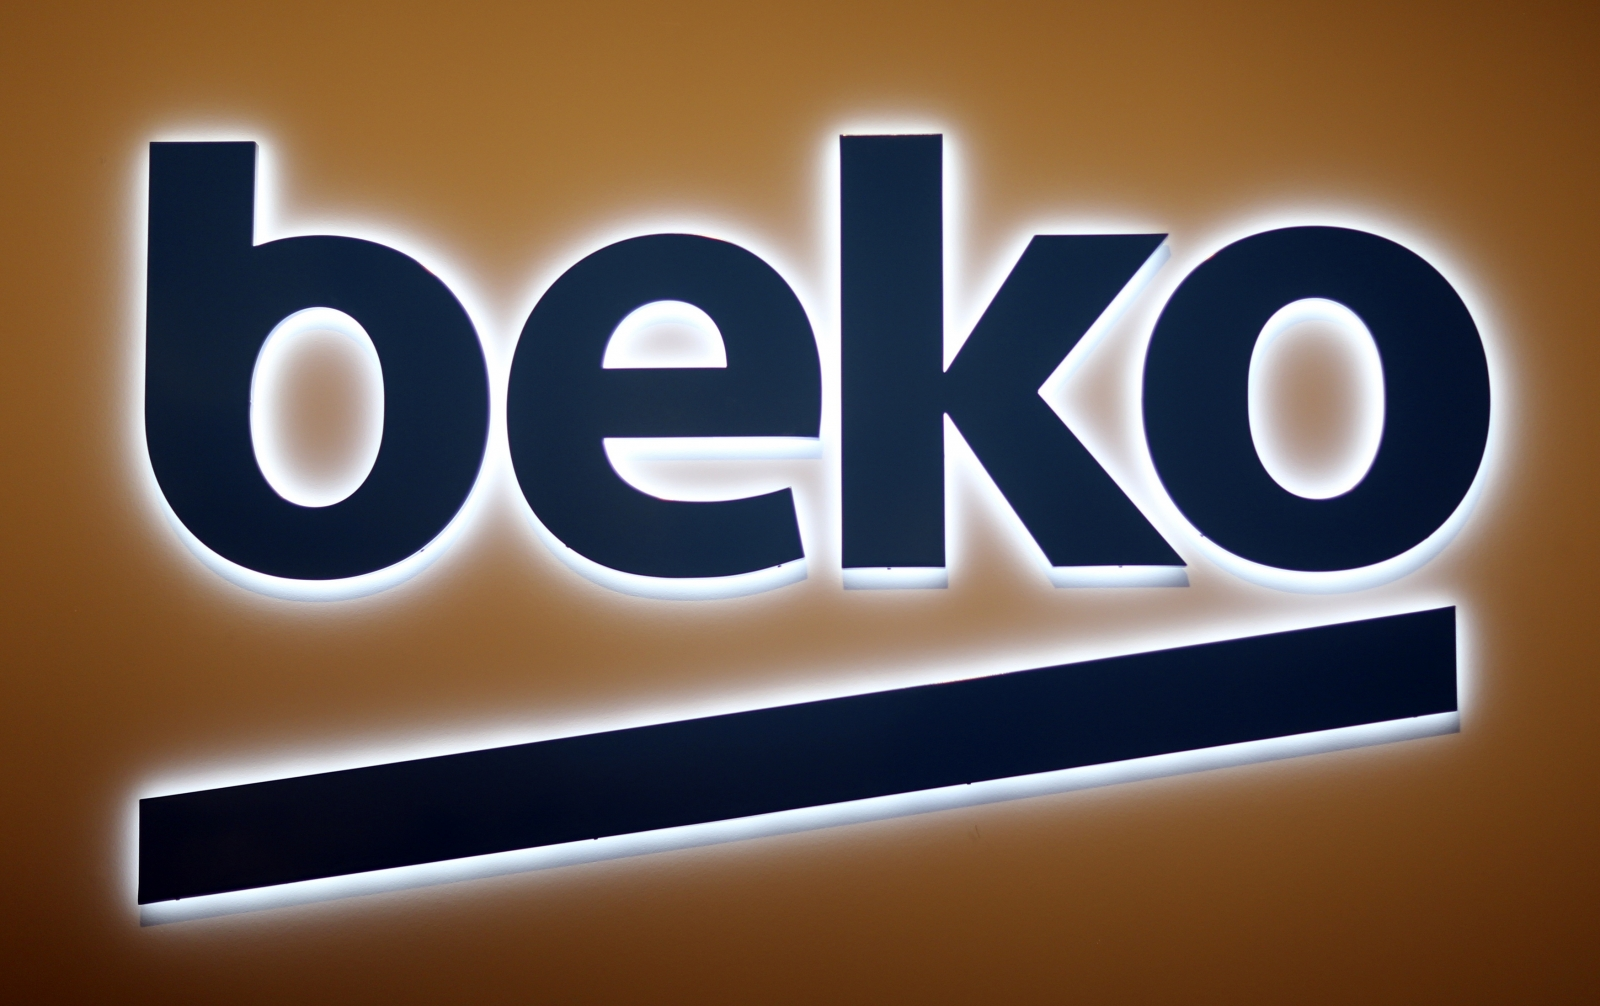 Beko logo domestic appliances